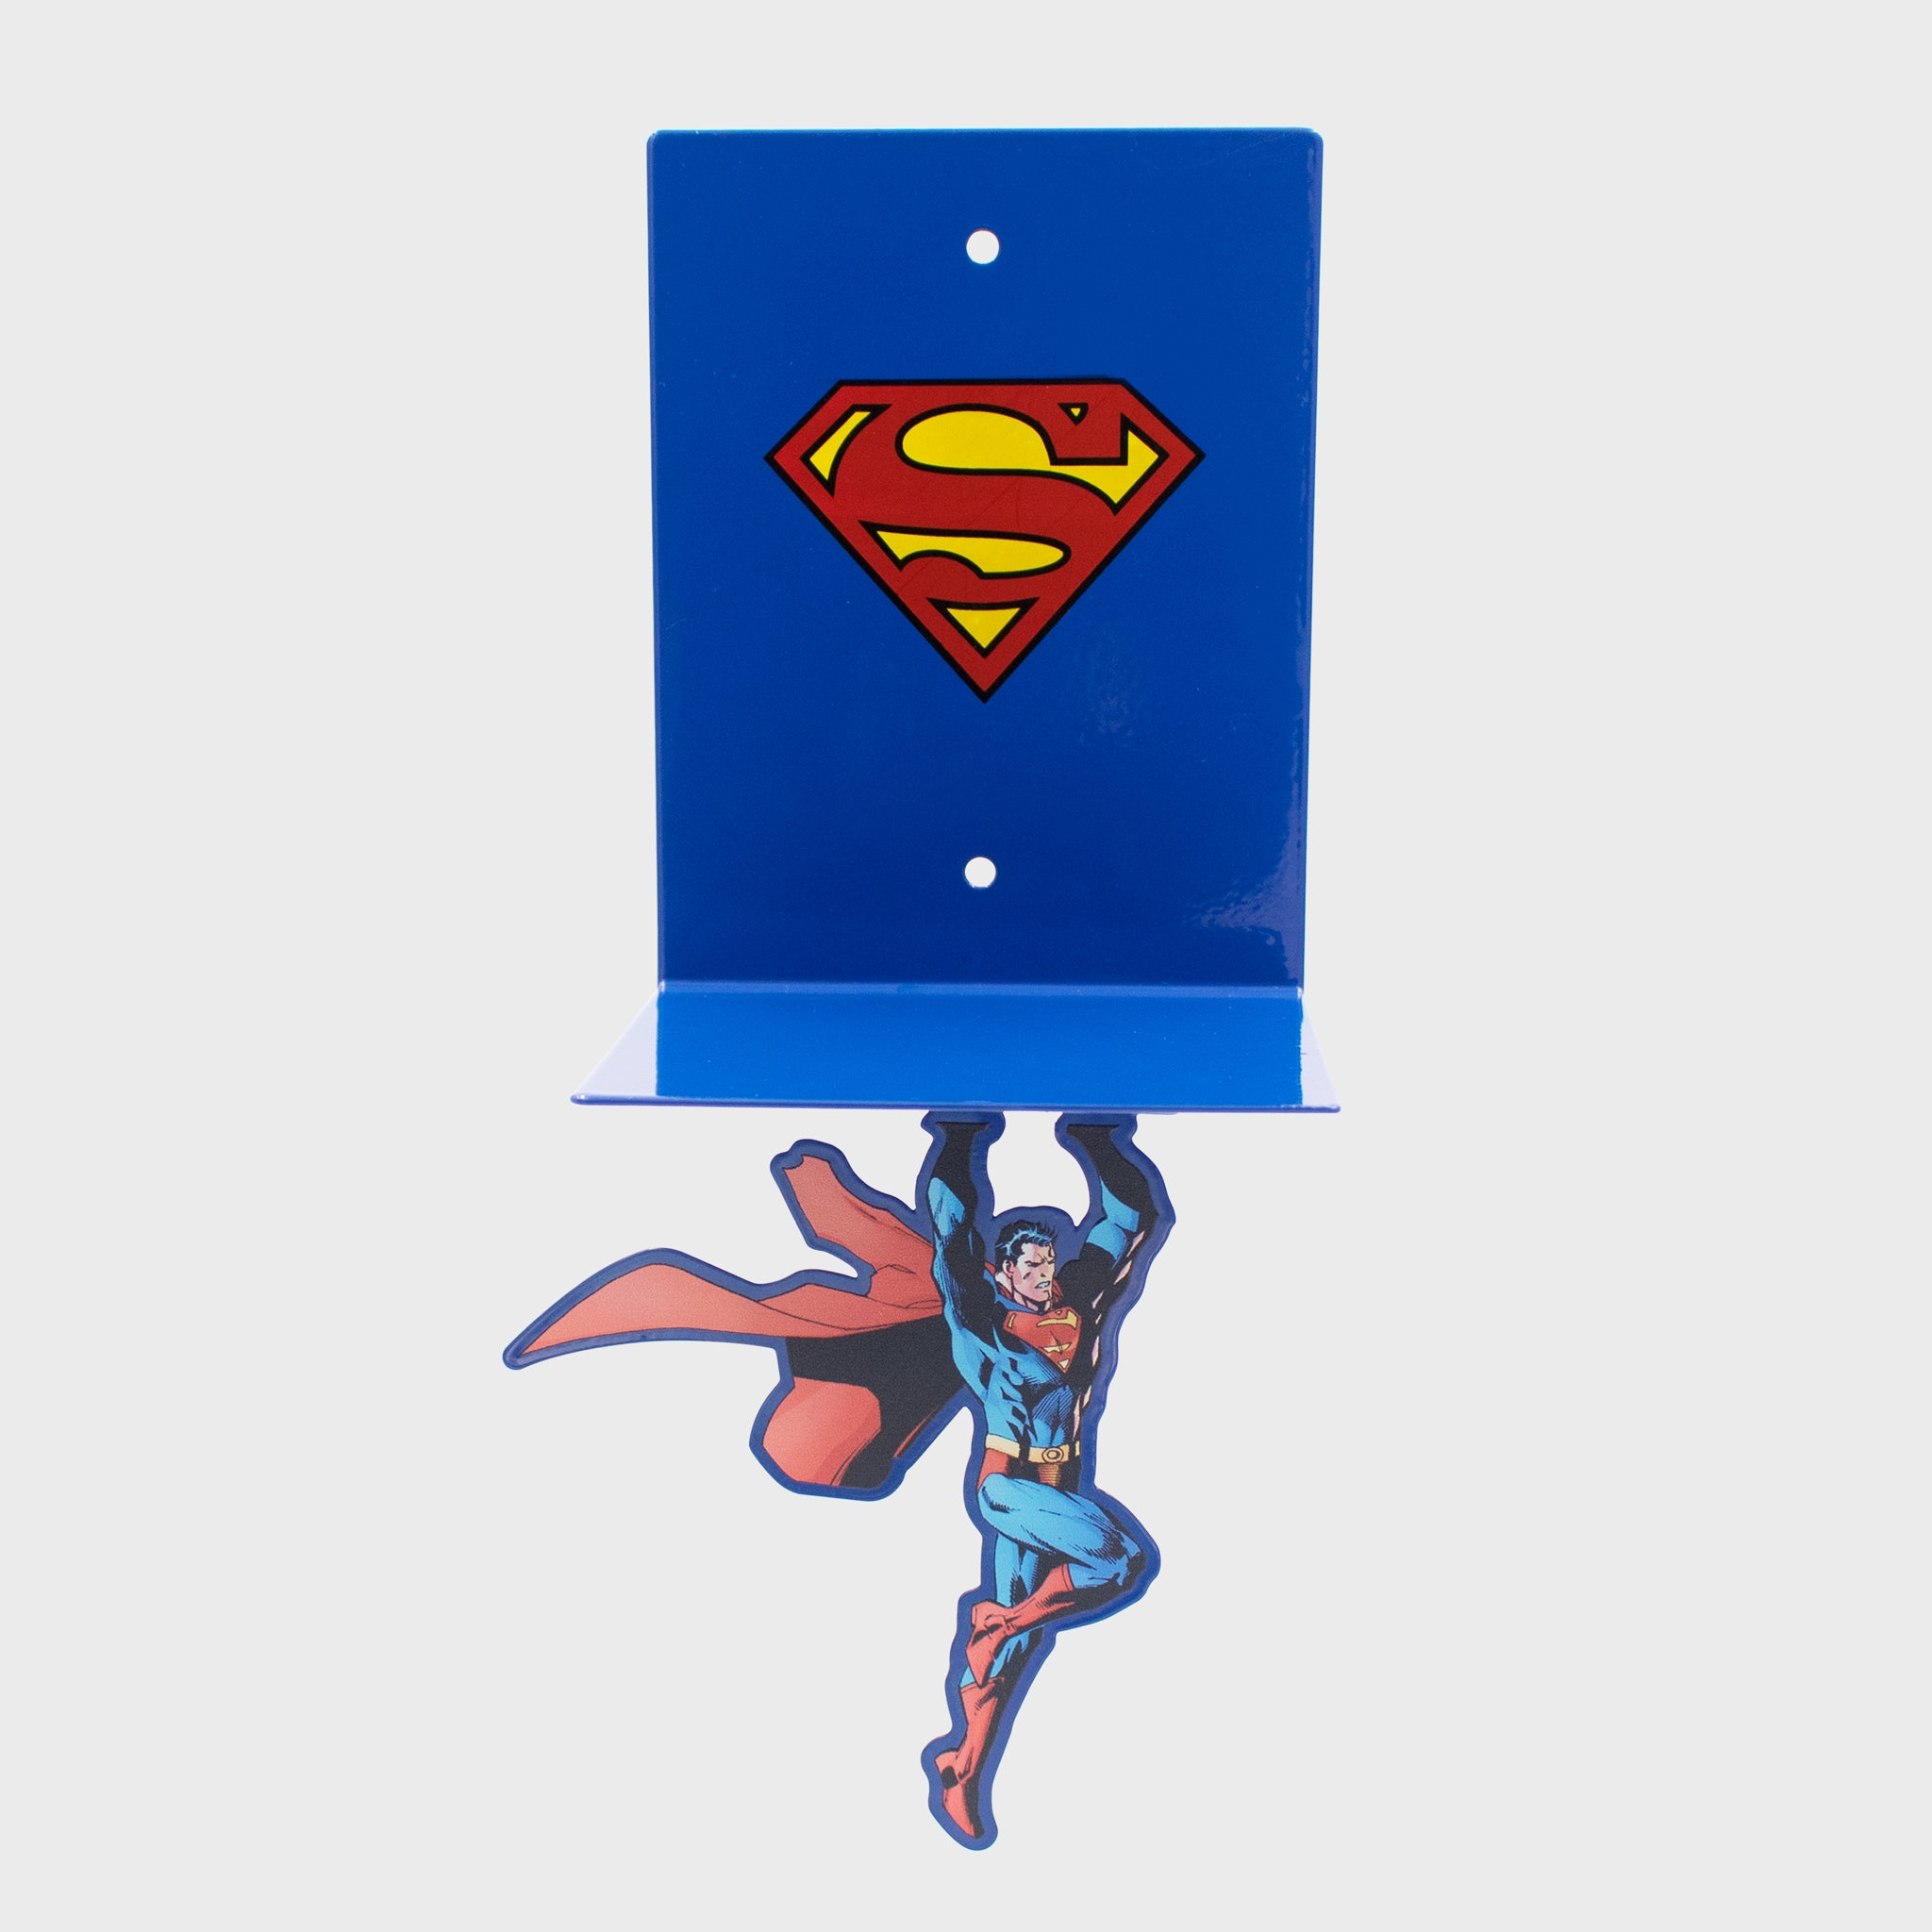 world's finest the collection subscription box exclusive collectible superman fortress of solitude culturefly dc comics superhero floating bookshelf home decor